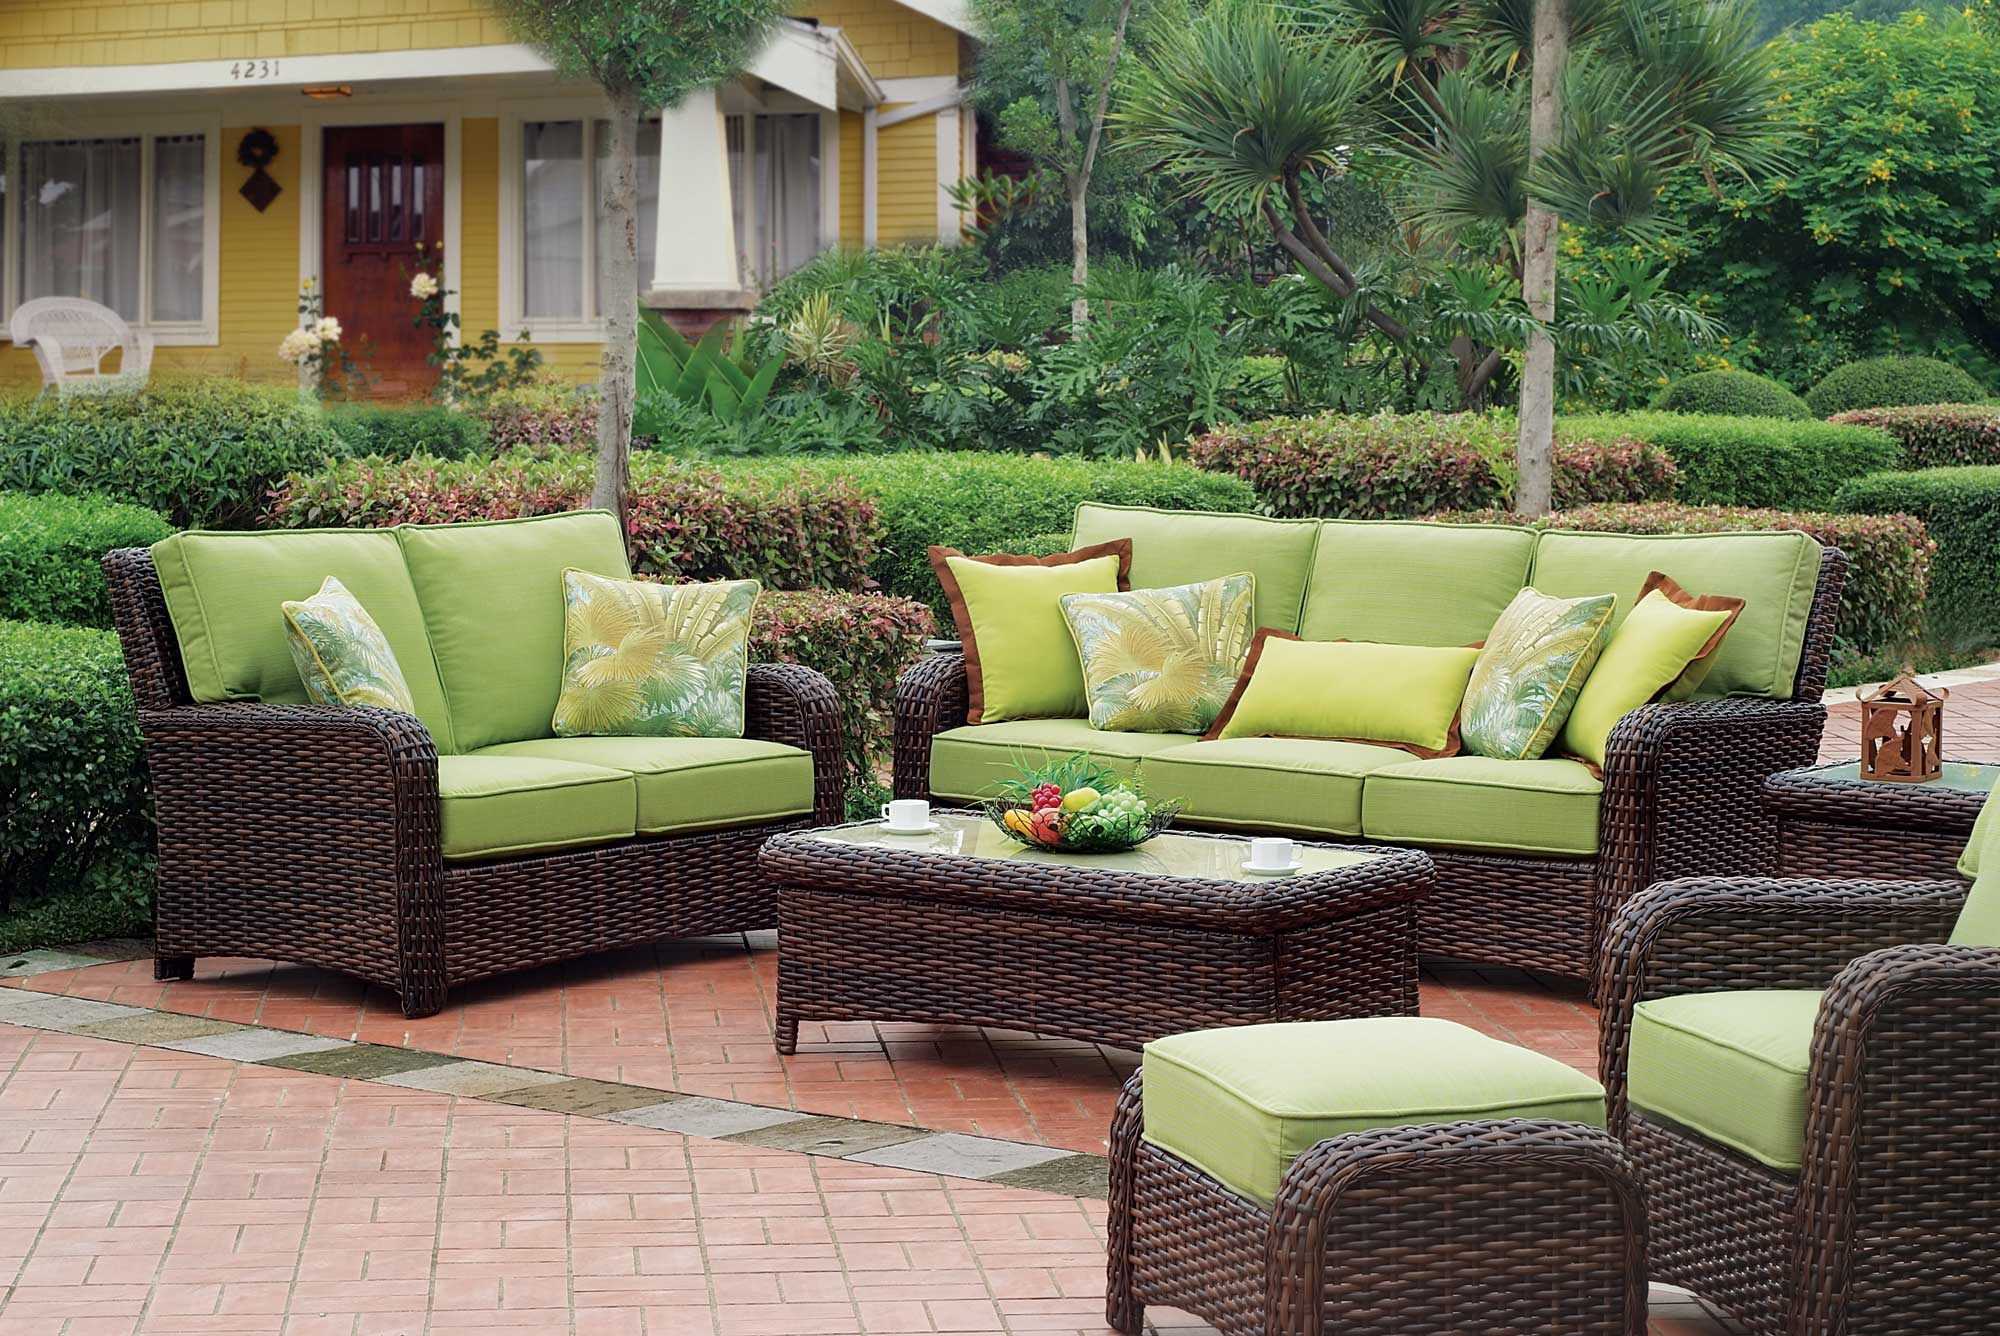 How to Opt Your Outdoor Living Space with Best Patio ... on Premium Outdoor Living id=85257